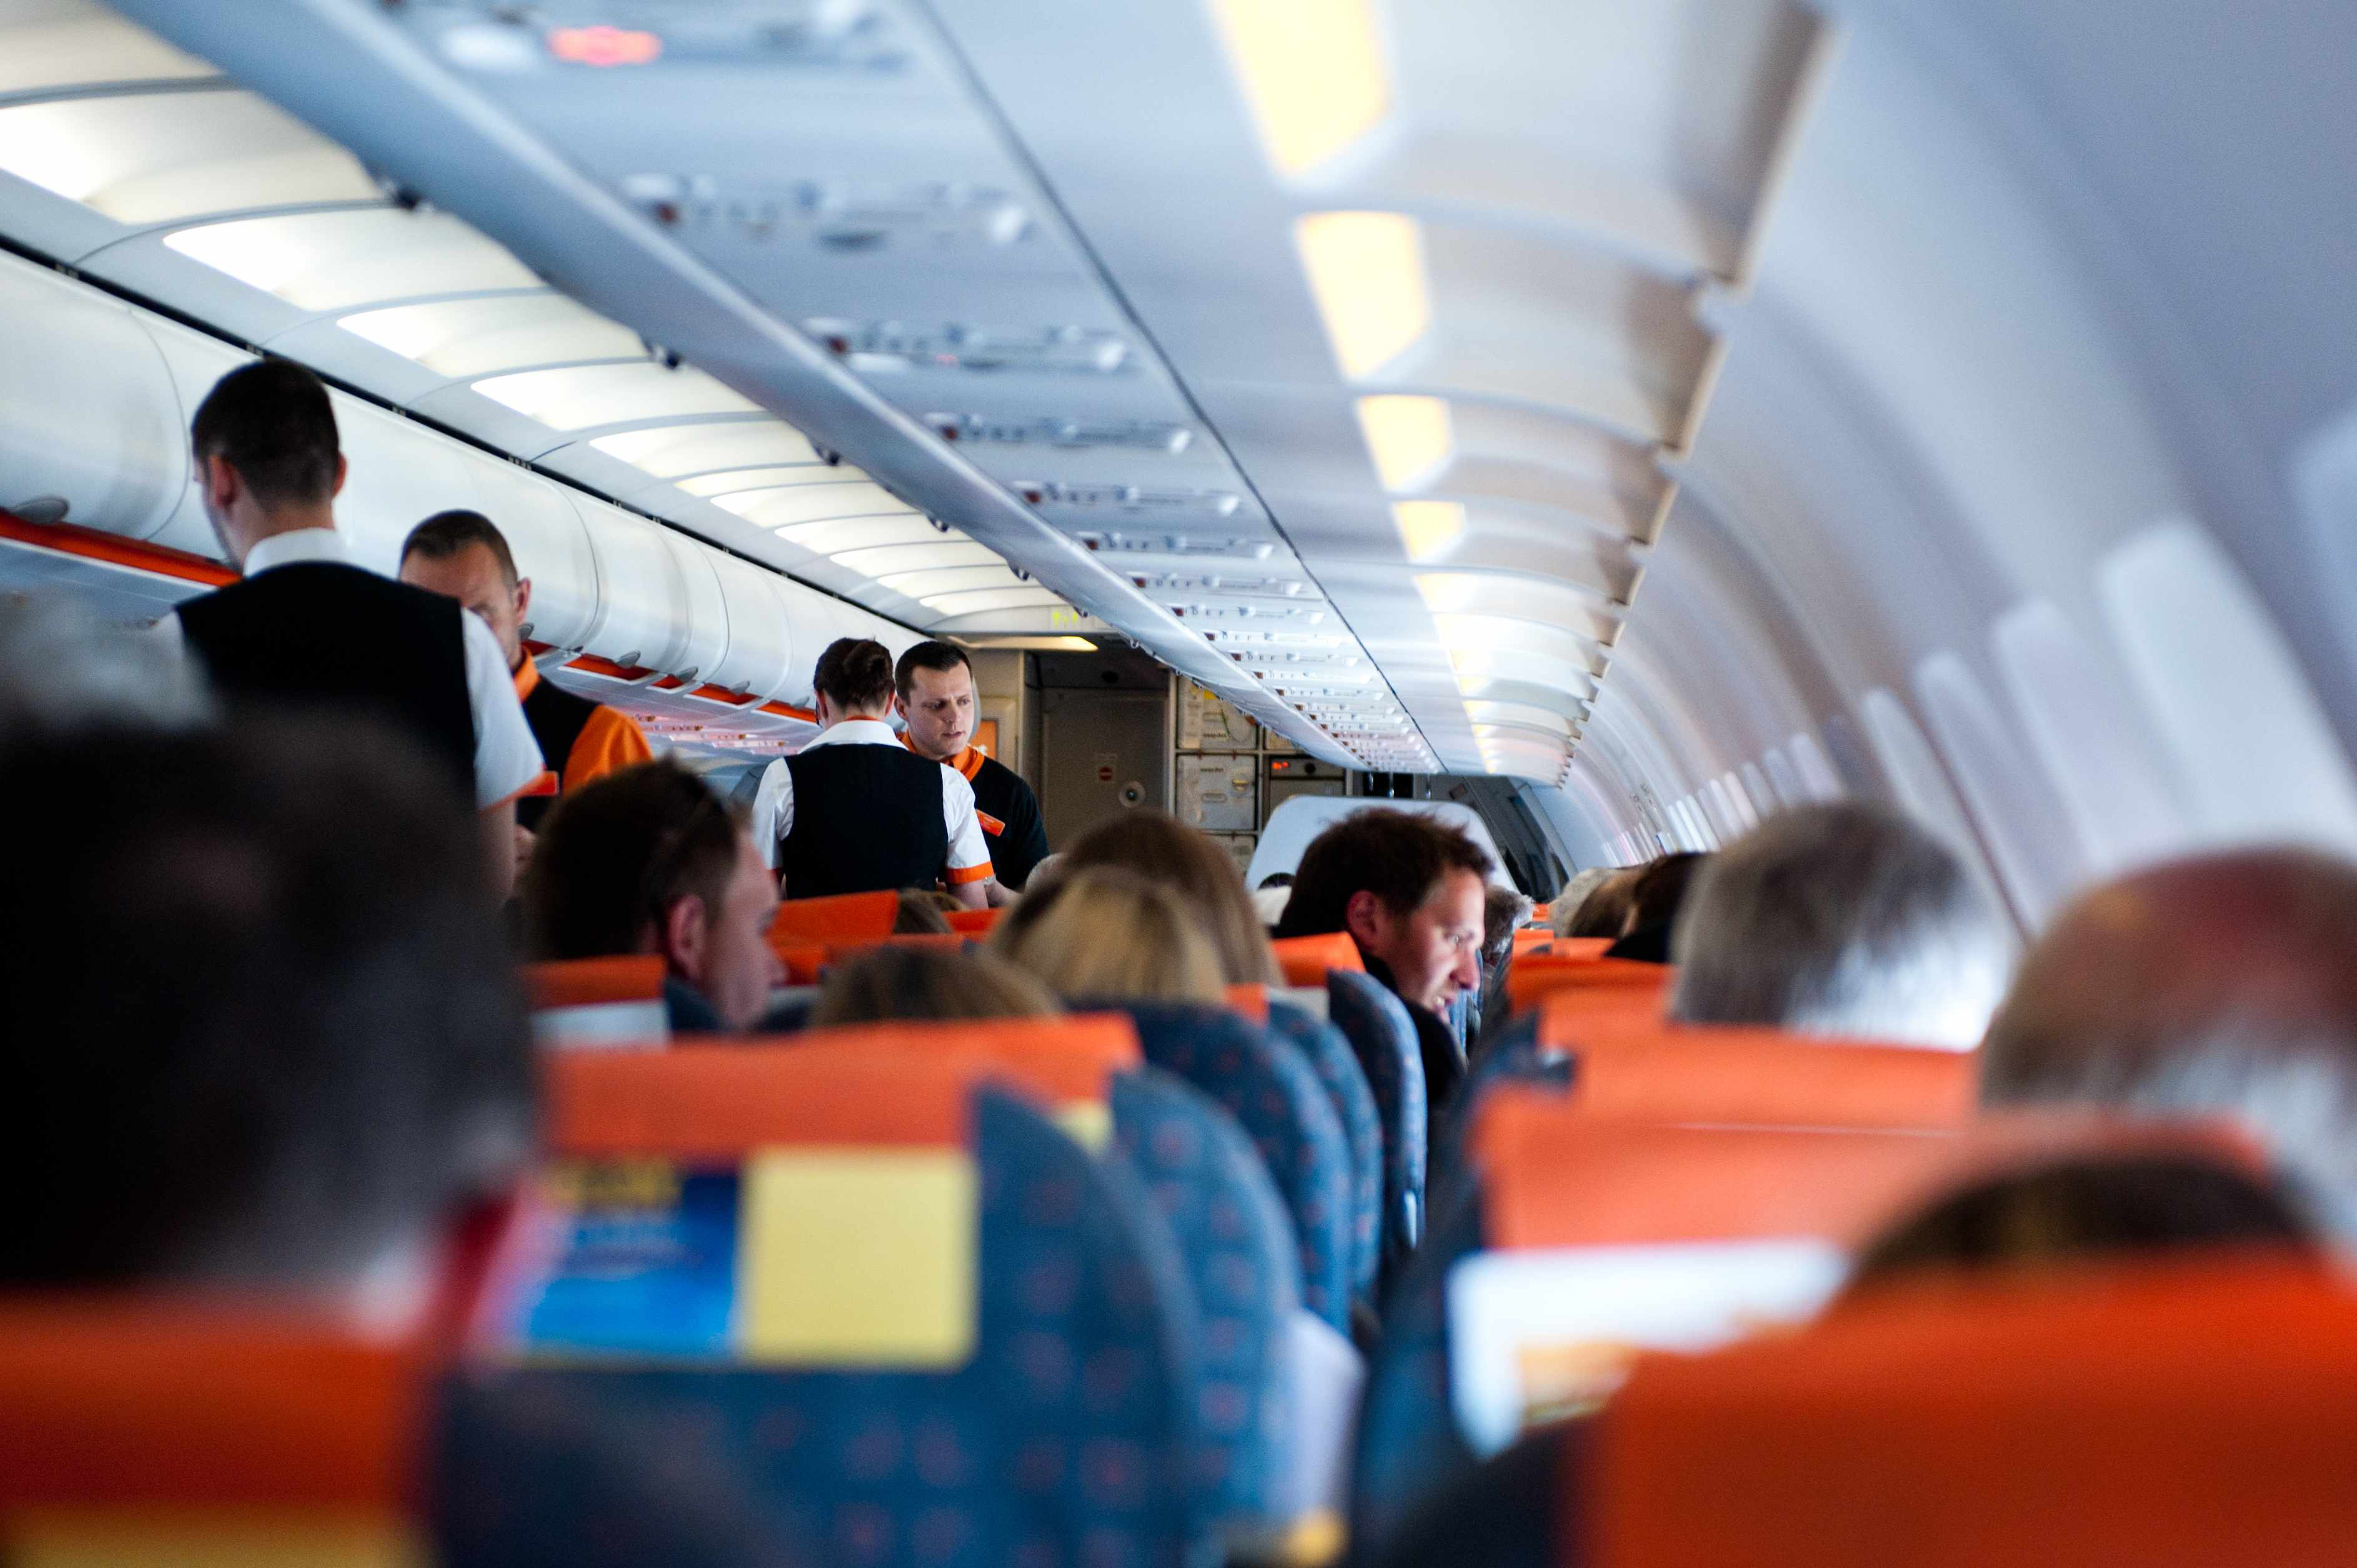 people sitting in their seats on a crowded airplane